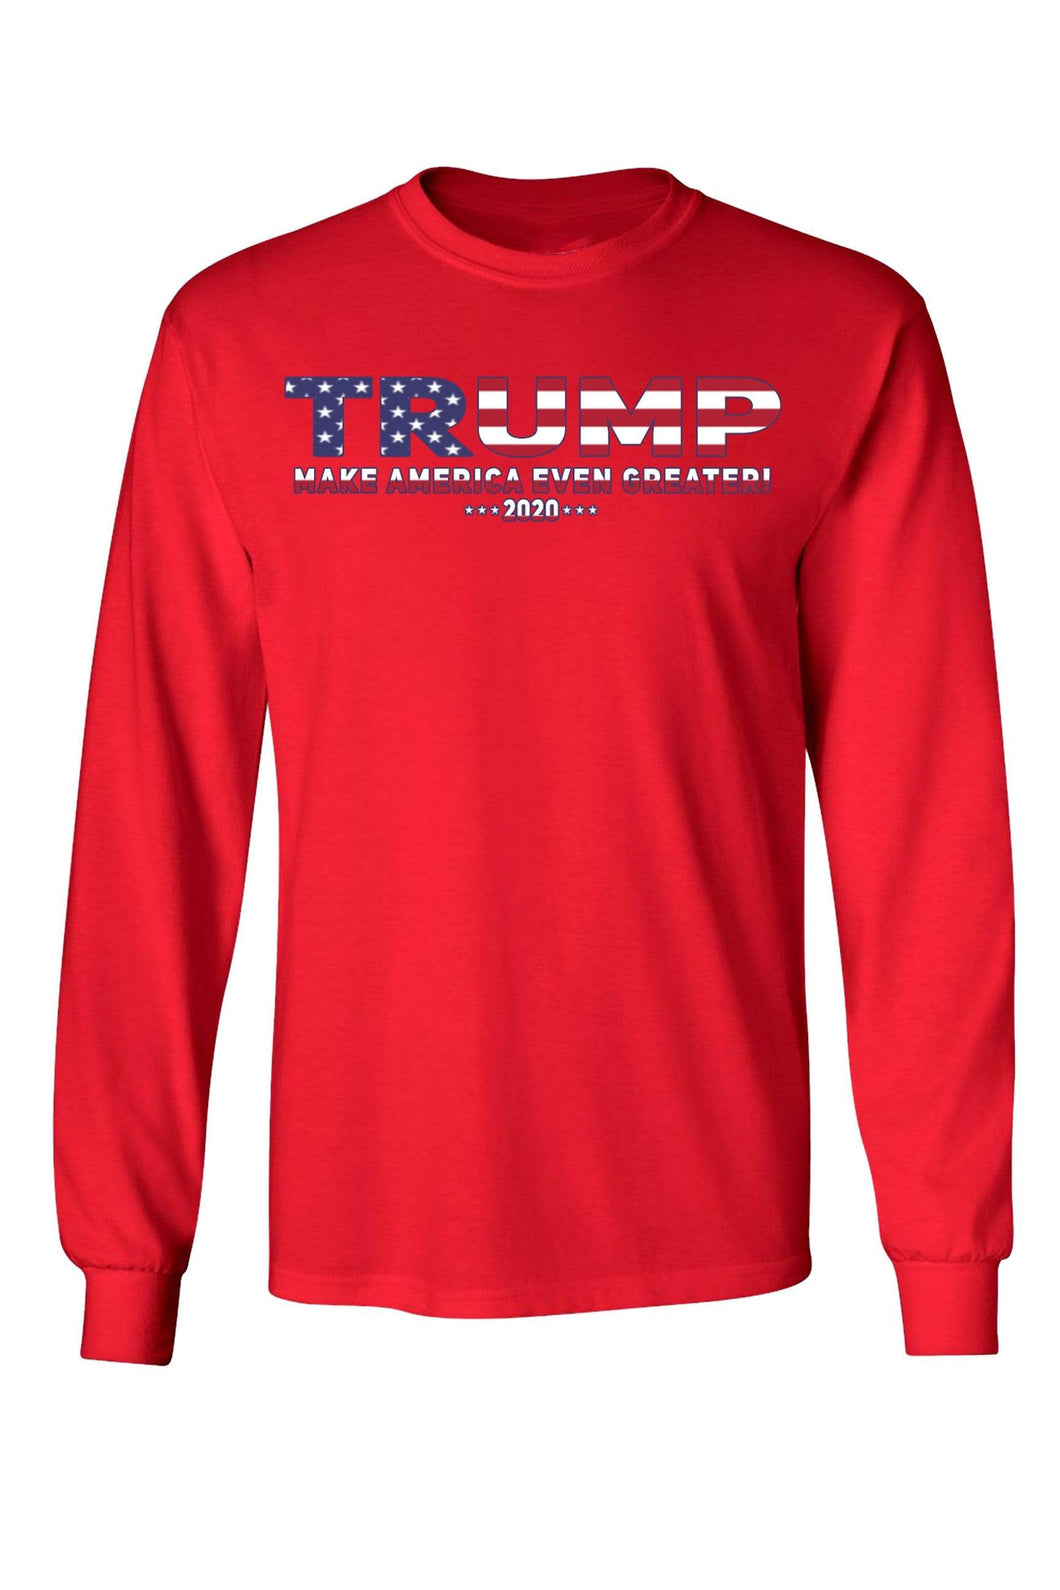 American Patriots Apparel Red / MEDIUM / FRONT Unisex Trump USA Make America Even Greater Long Sleeve Shirt